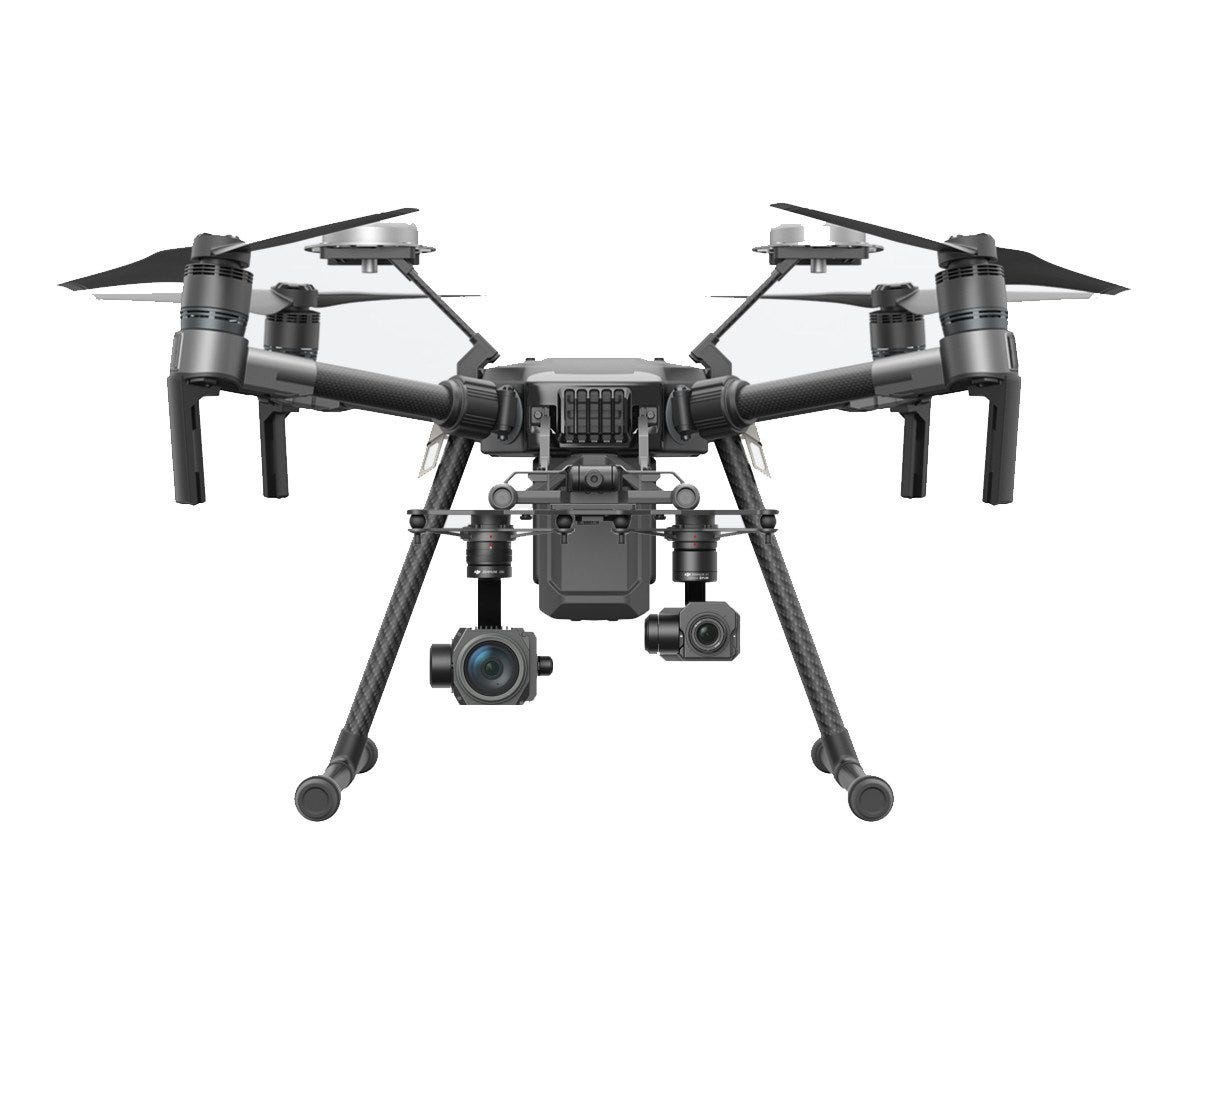 gopro drones with Dji Matrice 210 R  G on Hexo Gopro Test Winter 7818 furthermore Phantom 3 std batt pack bundle in addition Dji Matrice 210 R  G likewise Lagoa Azul Ilha Grande besides The New Spark Is Djis Smallest Cheapest Drone Yet 2017 05 24.